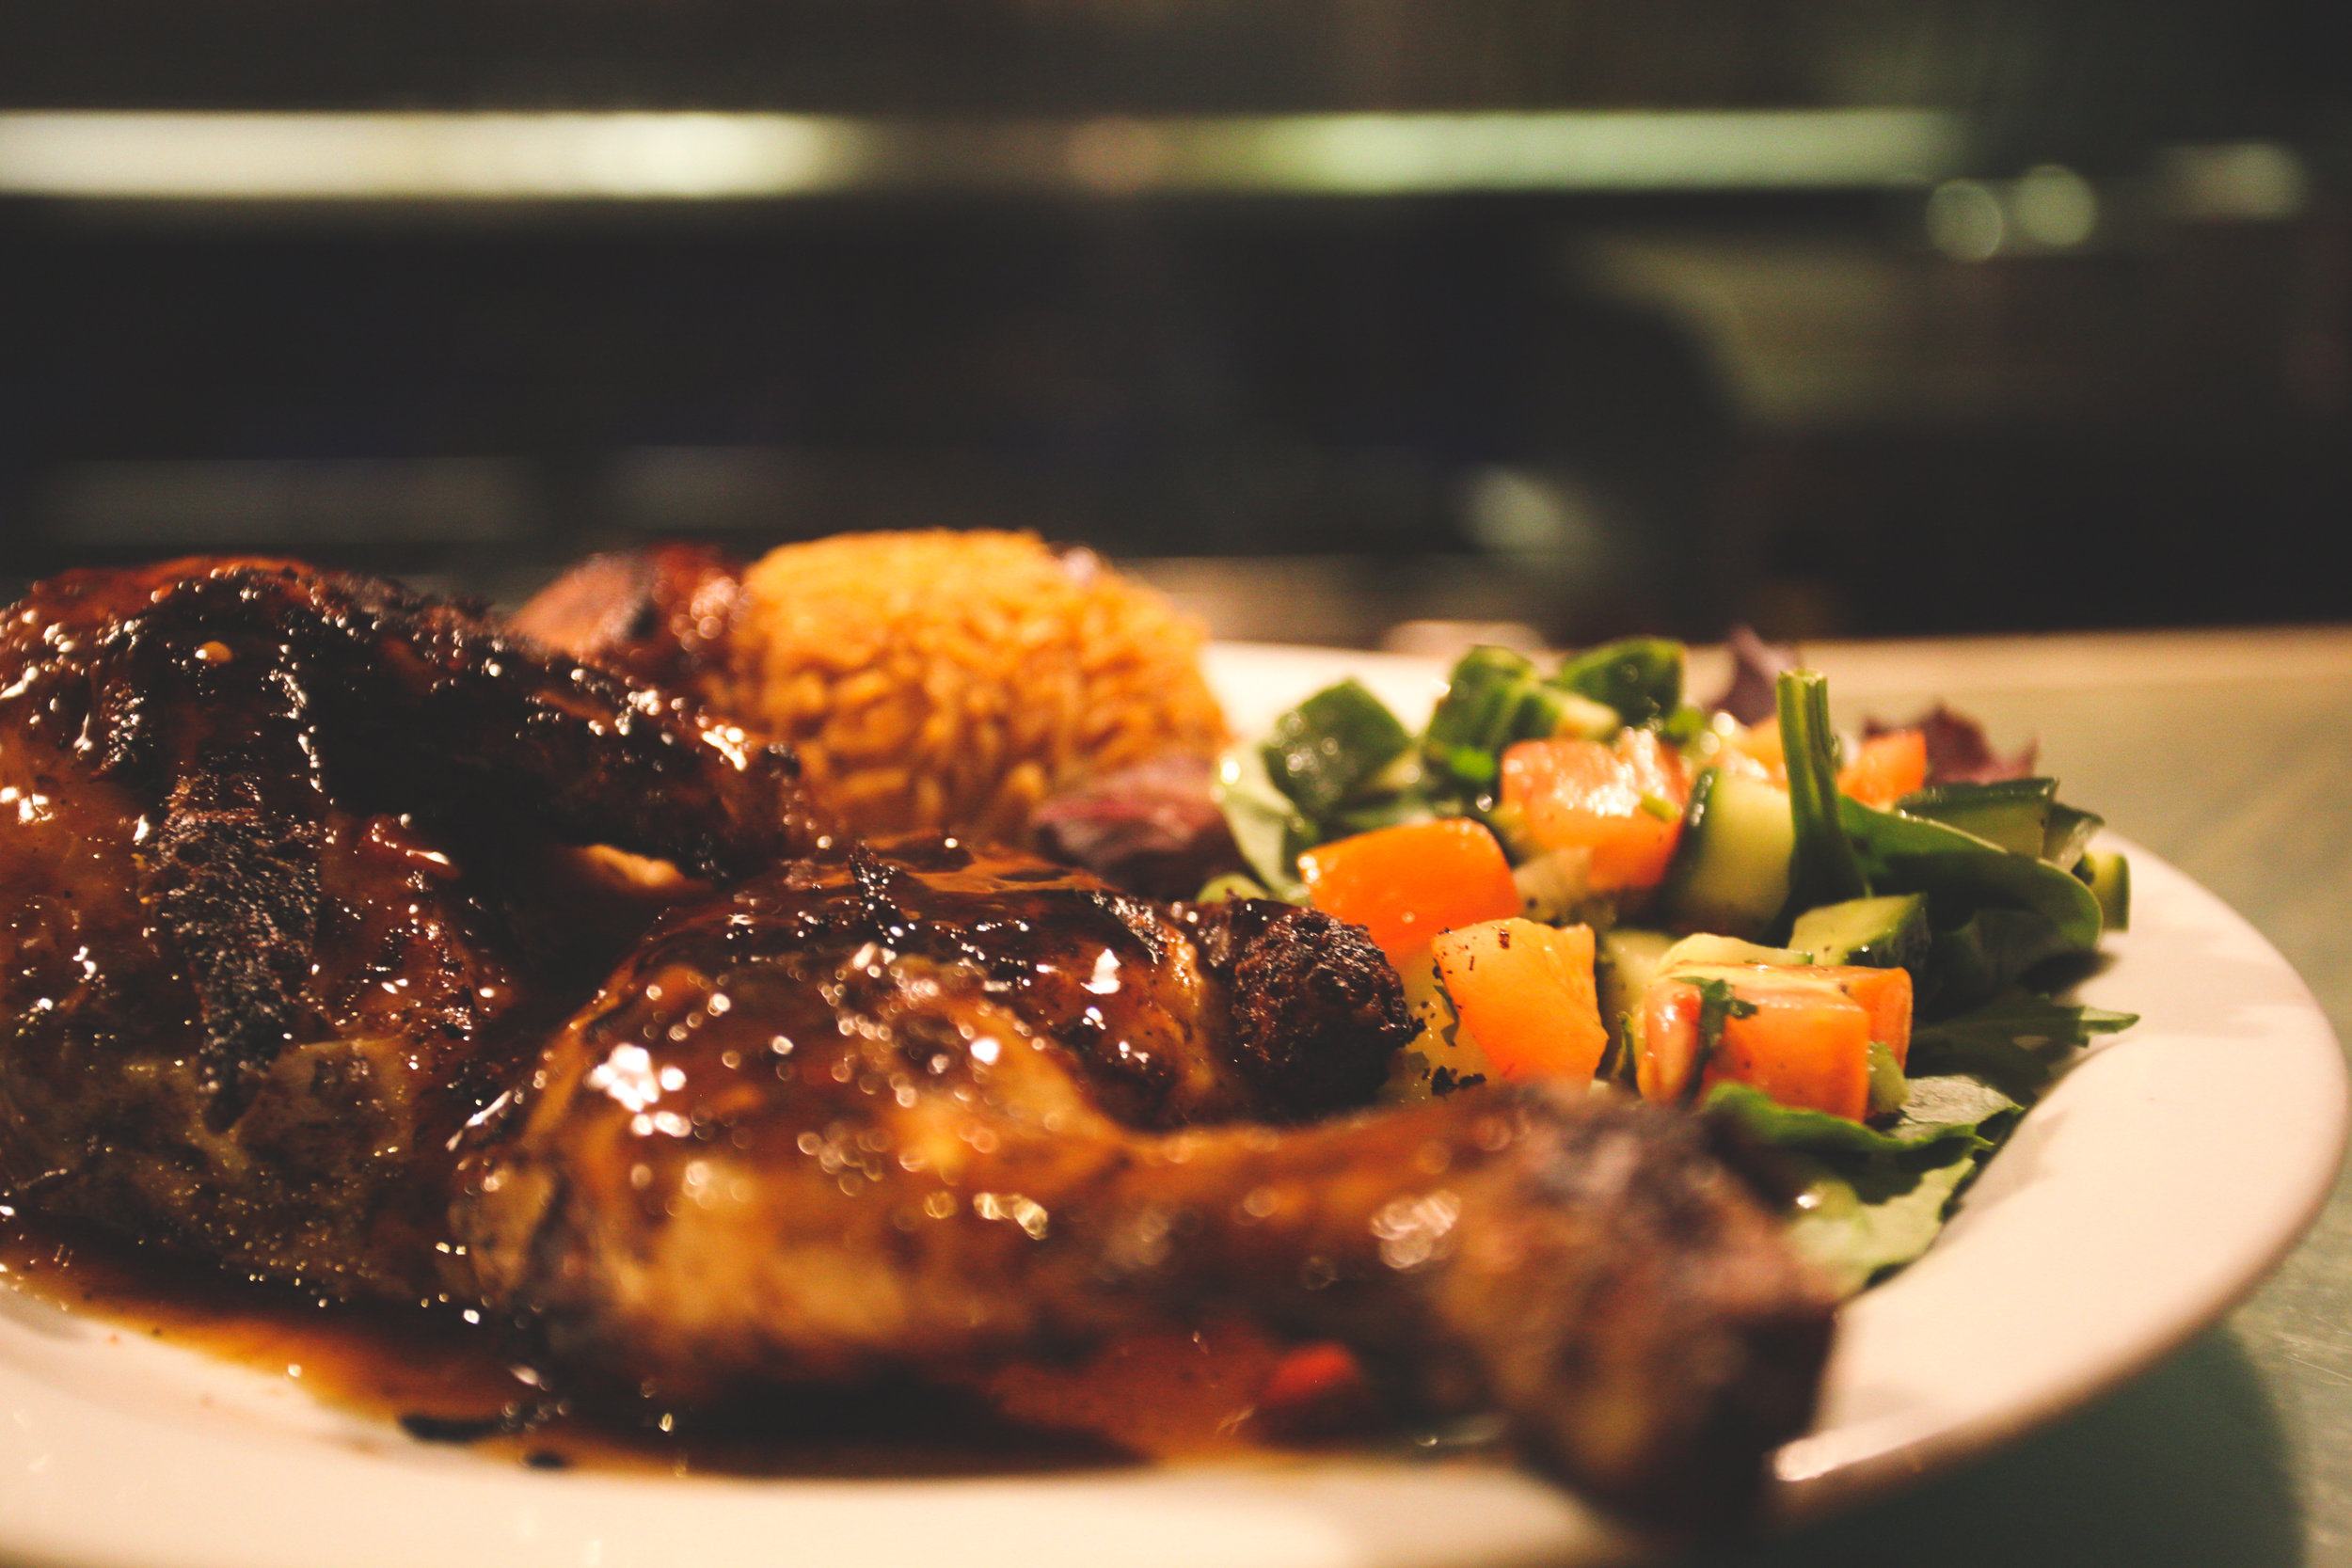 Guanabana-restaurant-jerk-chicken-camden-london.jpg